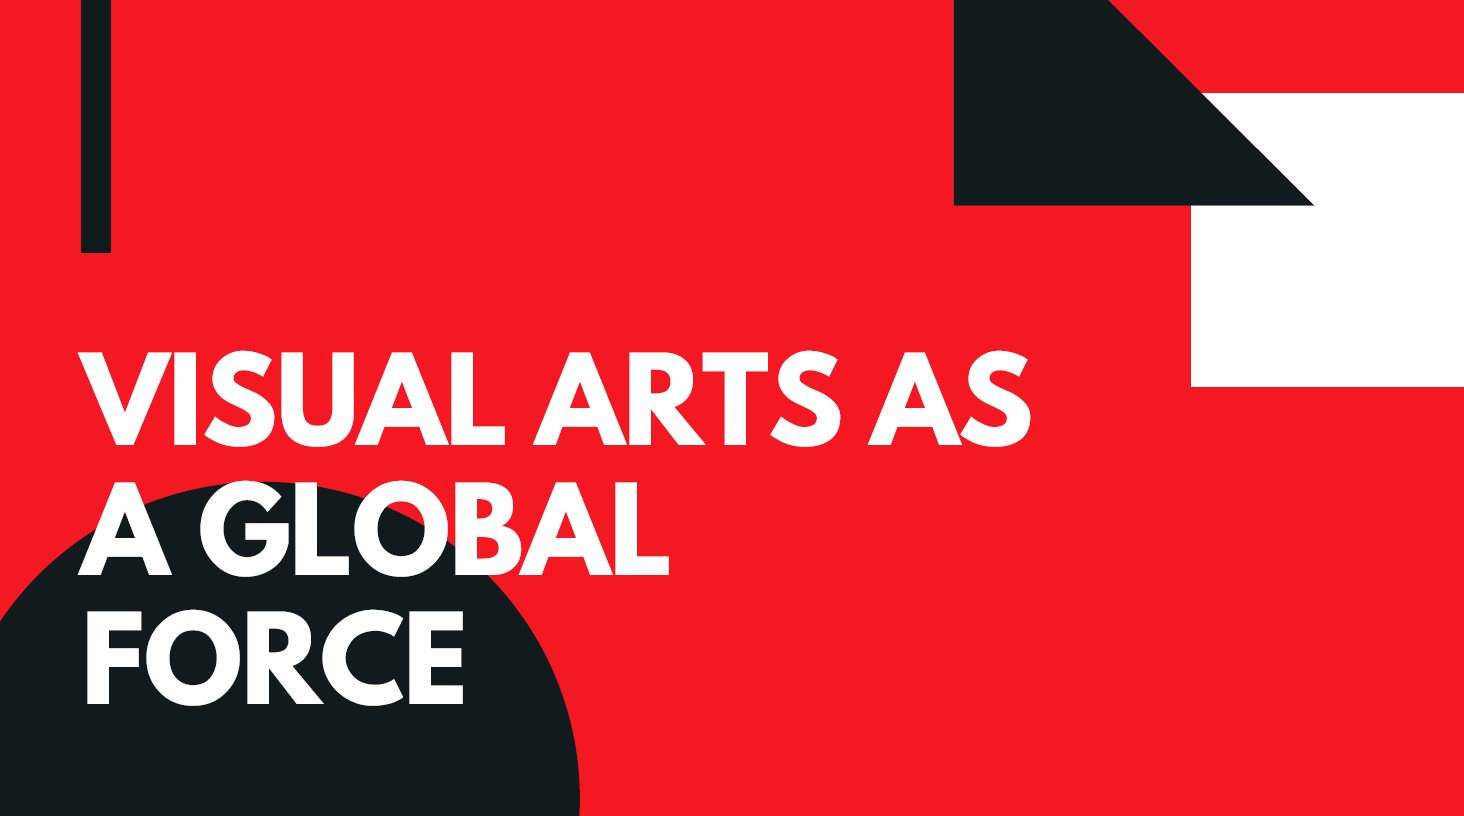 Visual+Arts+as+a+Global+Force+-+New+Banner+Header.png